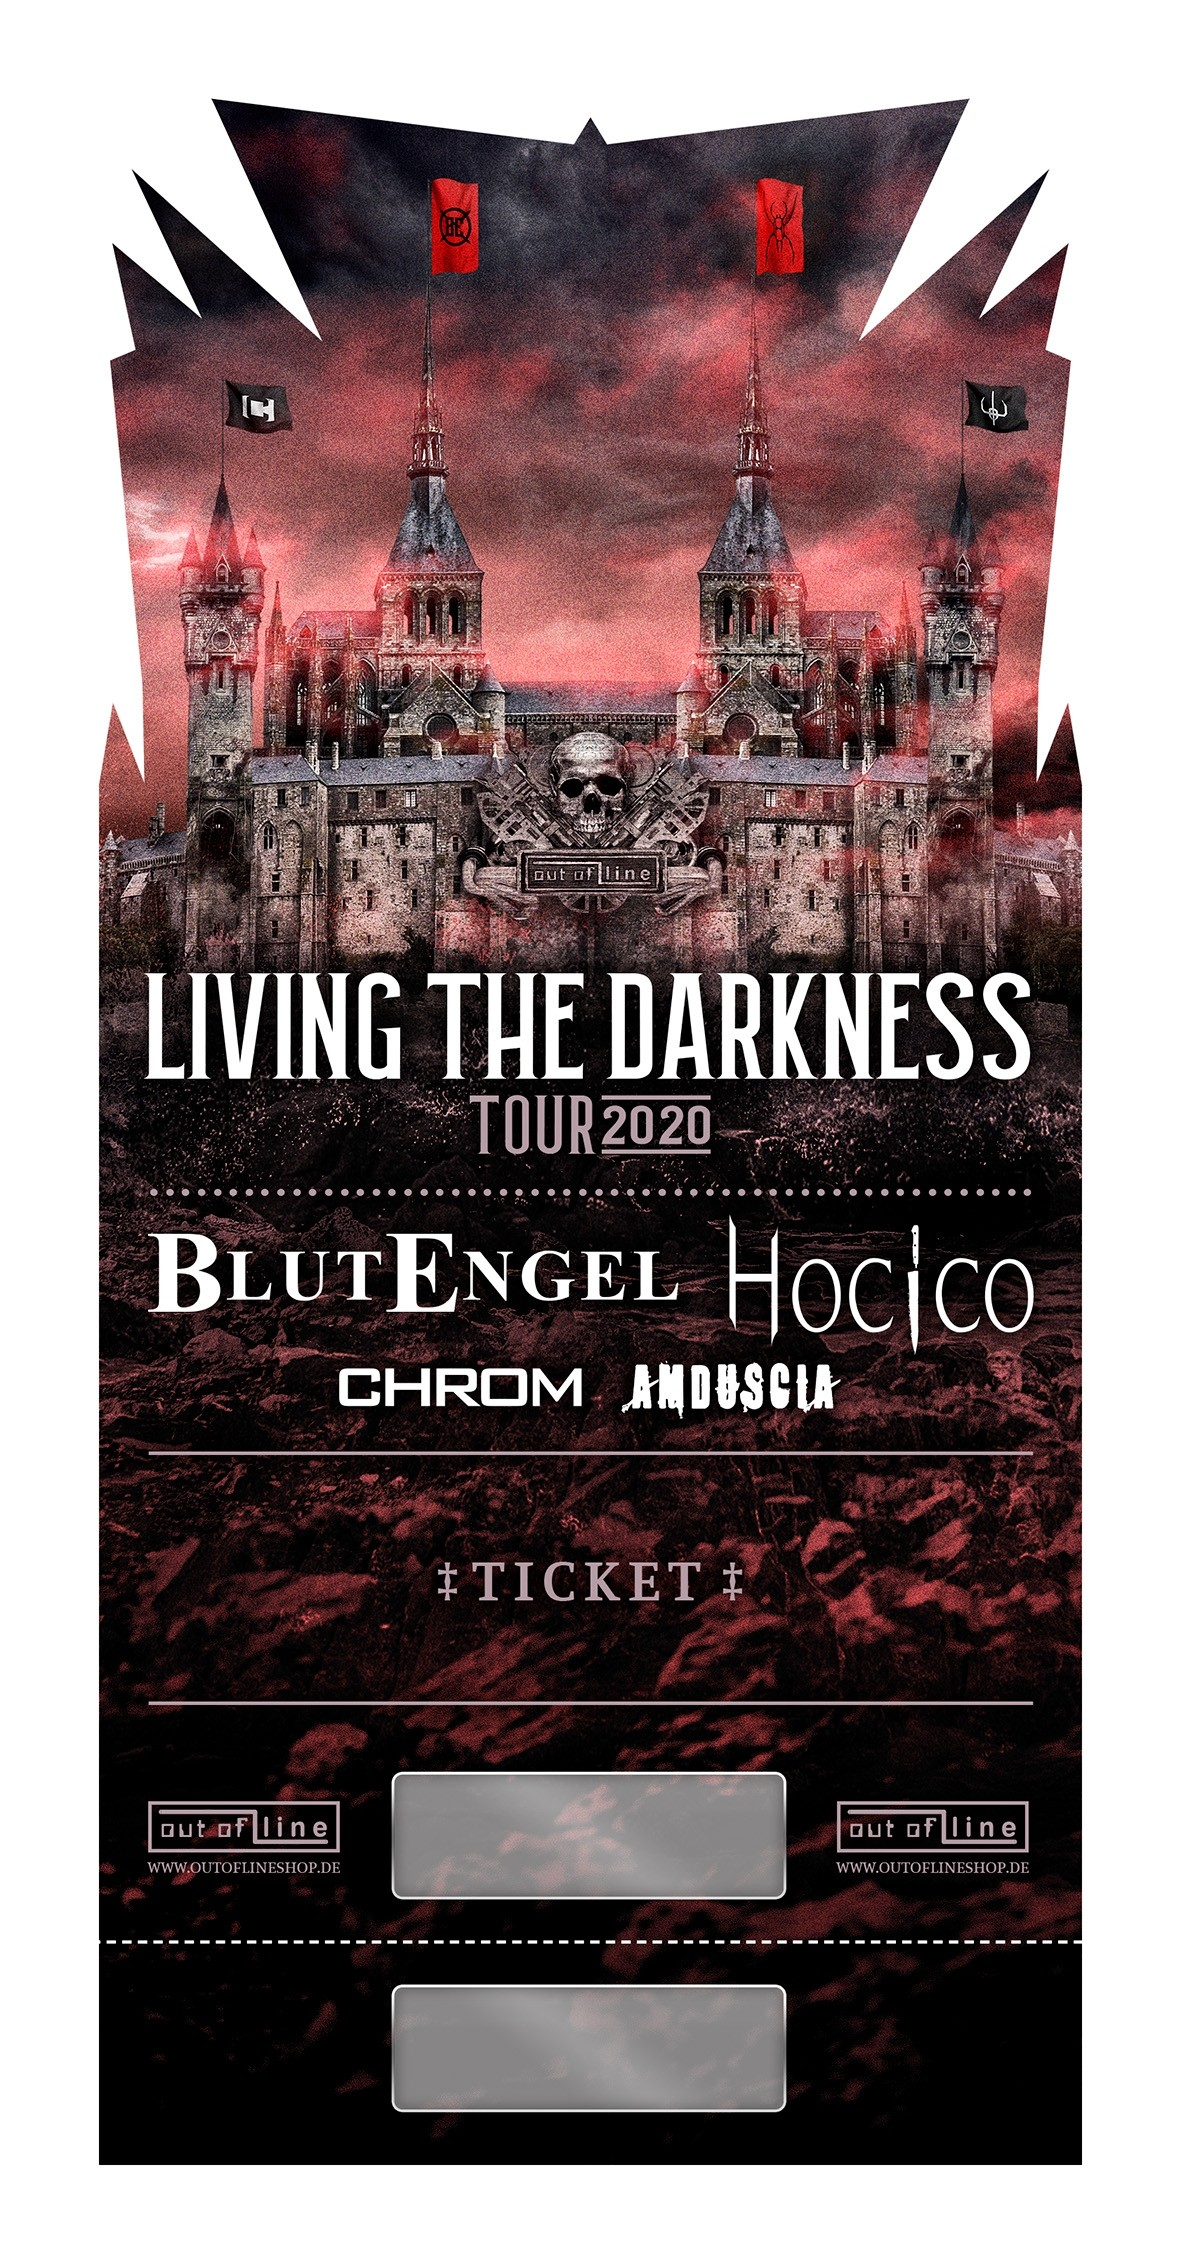 LIVING THE DARKNESS Tour 2020 - 04.07.20 - LKA/Stuttgart - Ticket